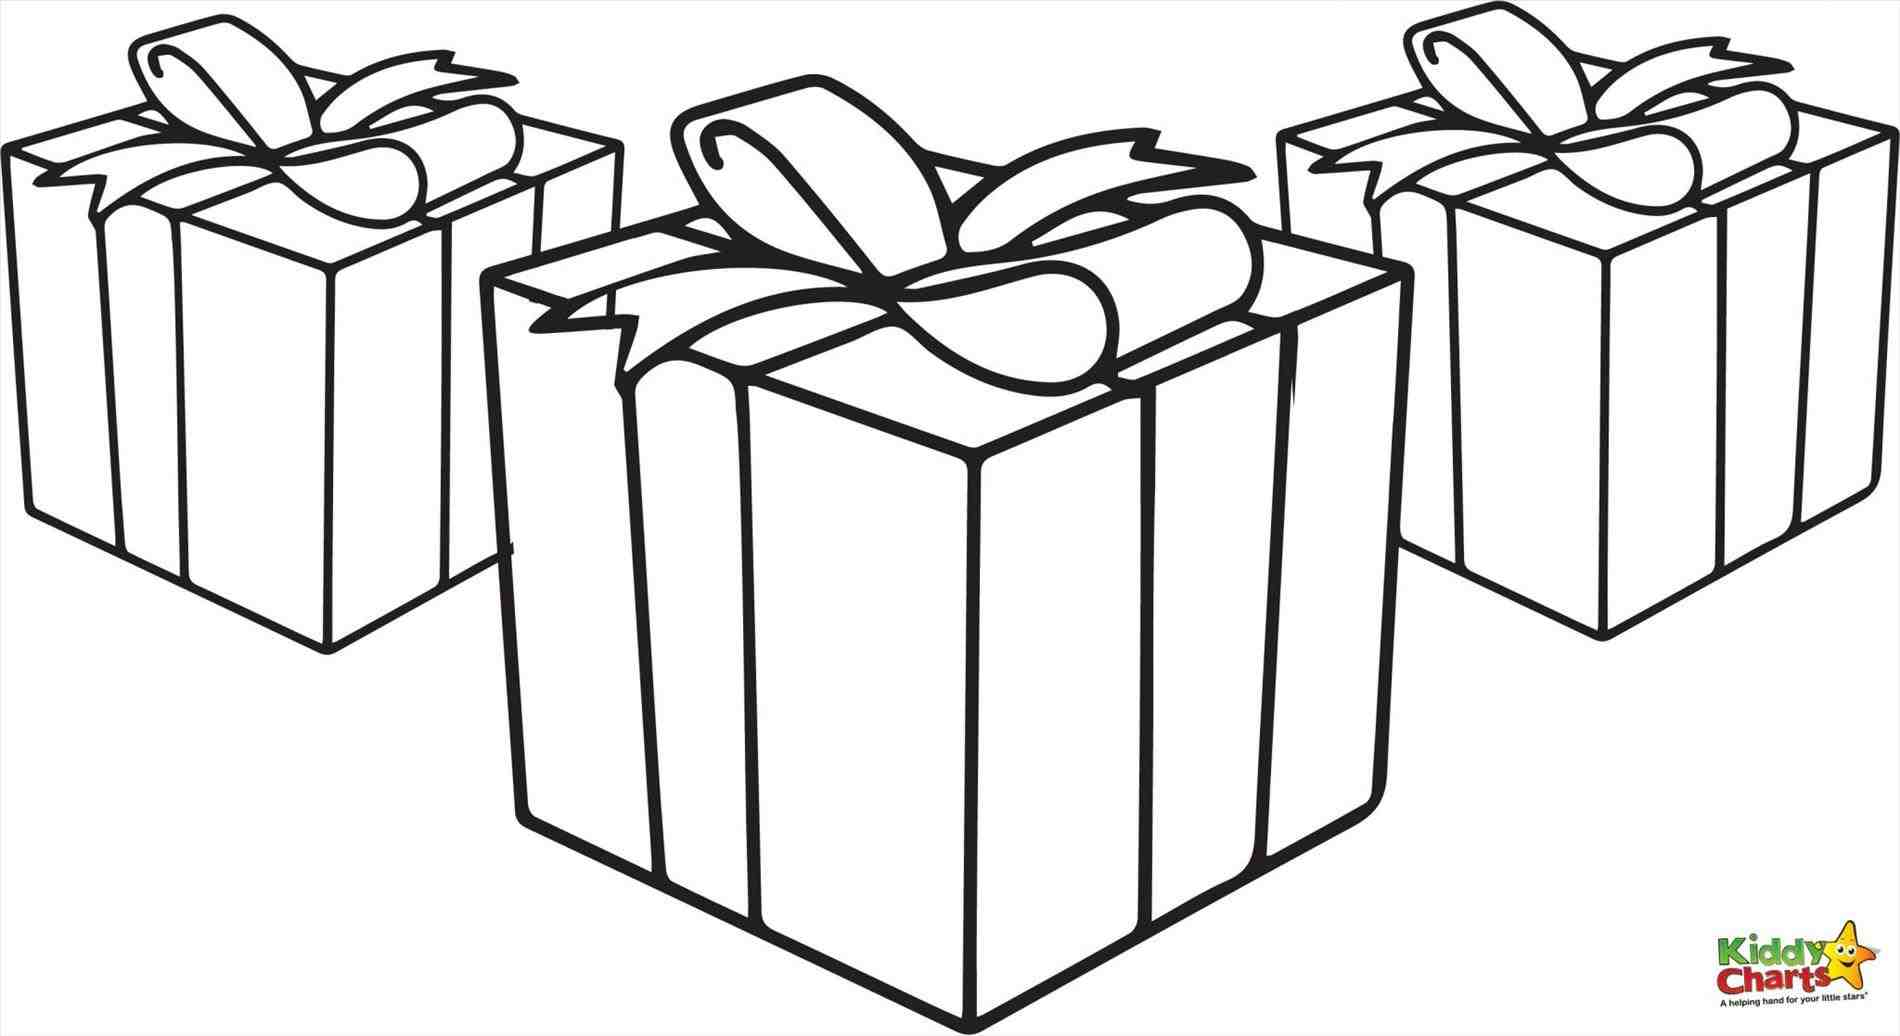 1900x1036 Christmas Present Clip Art Black And White cheminee.website